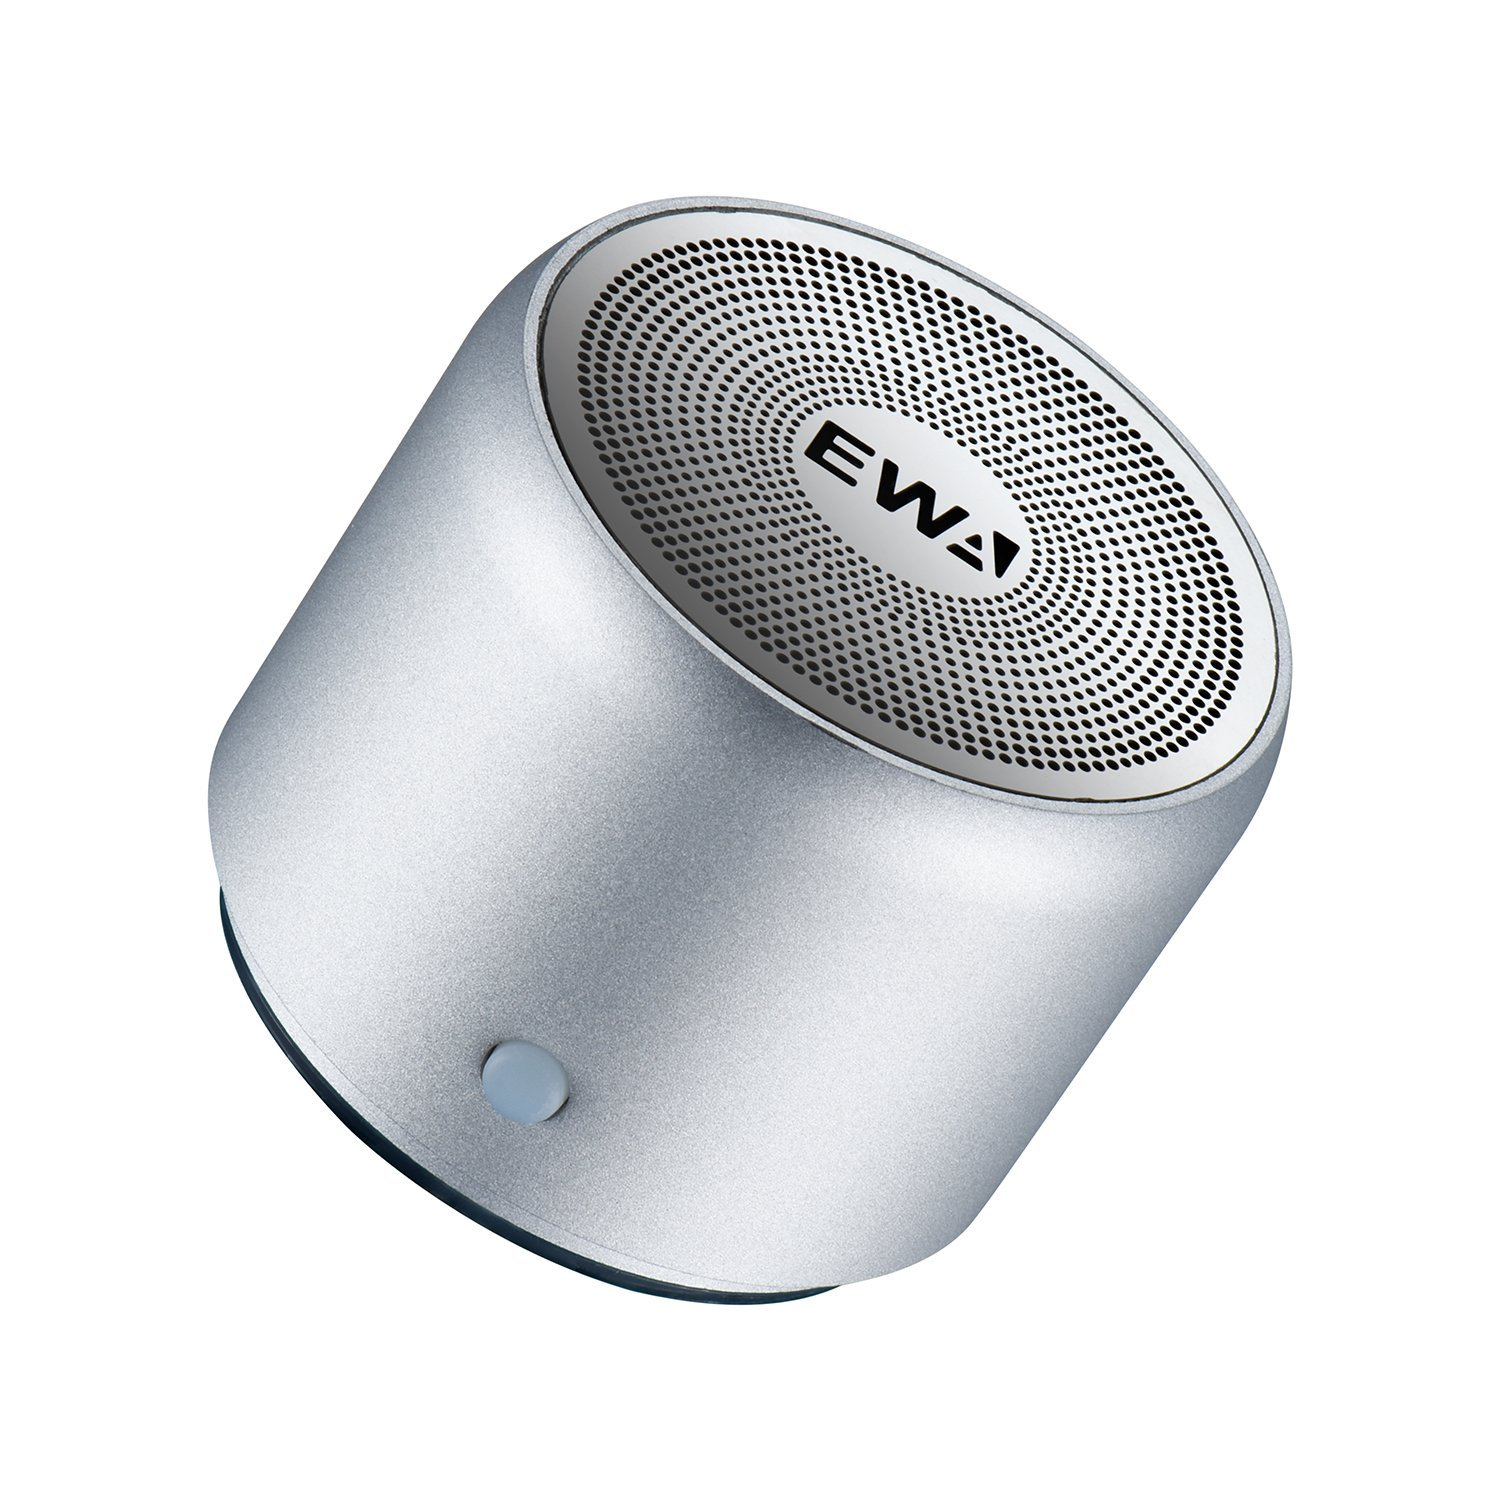 EWA A106 Portable Mini Bluetooth Speaker with Passive Radiator, Powerful Sound, Enhanced Bass, Tiny Body Loud Voice, Perfect Wireless Speaker For Shower, Travel, Outdoor, Echo Dot, Hiking and More